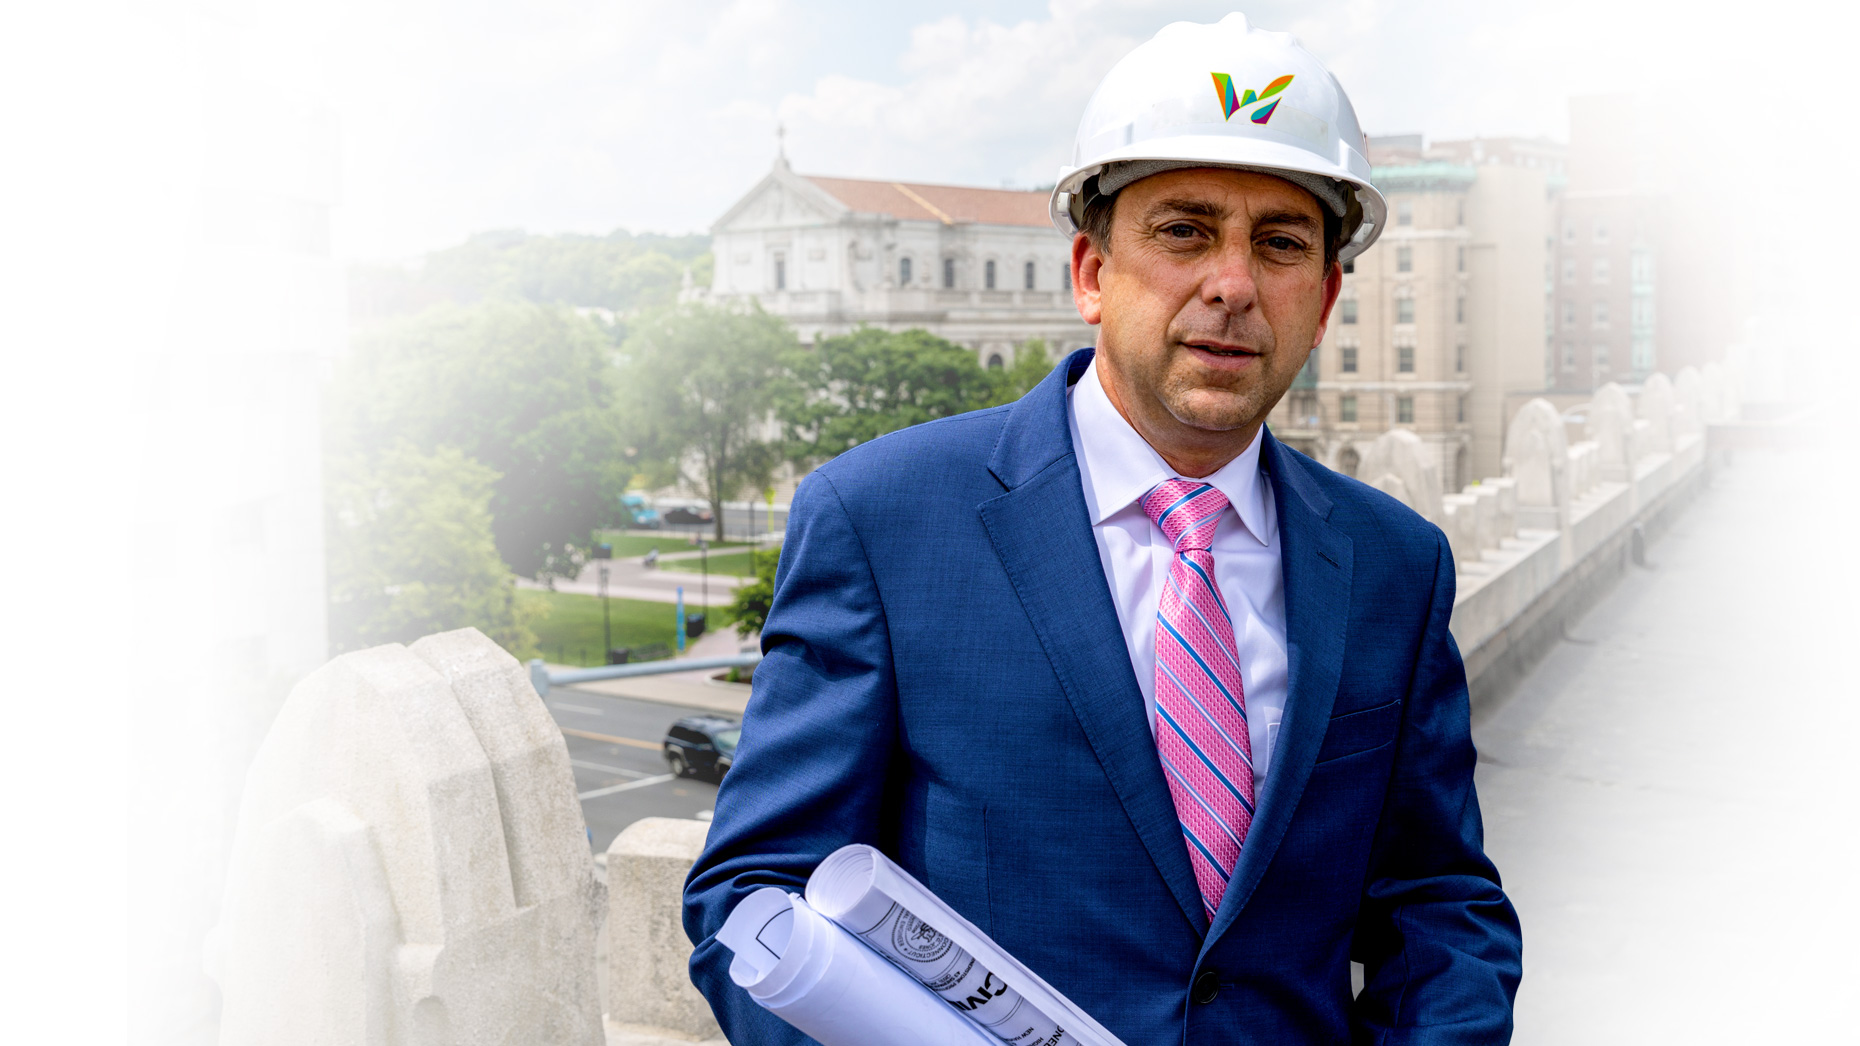 Joe Gramando wearing a Waterbury hard hat and holding blueprints, standing by the Waterbury Green